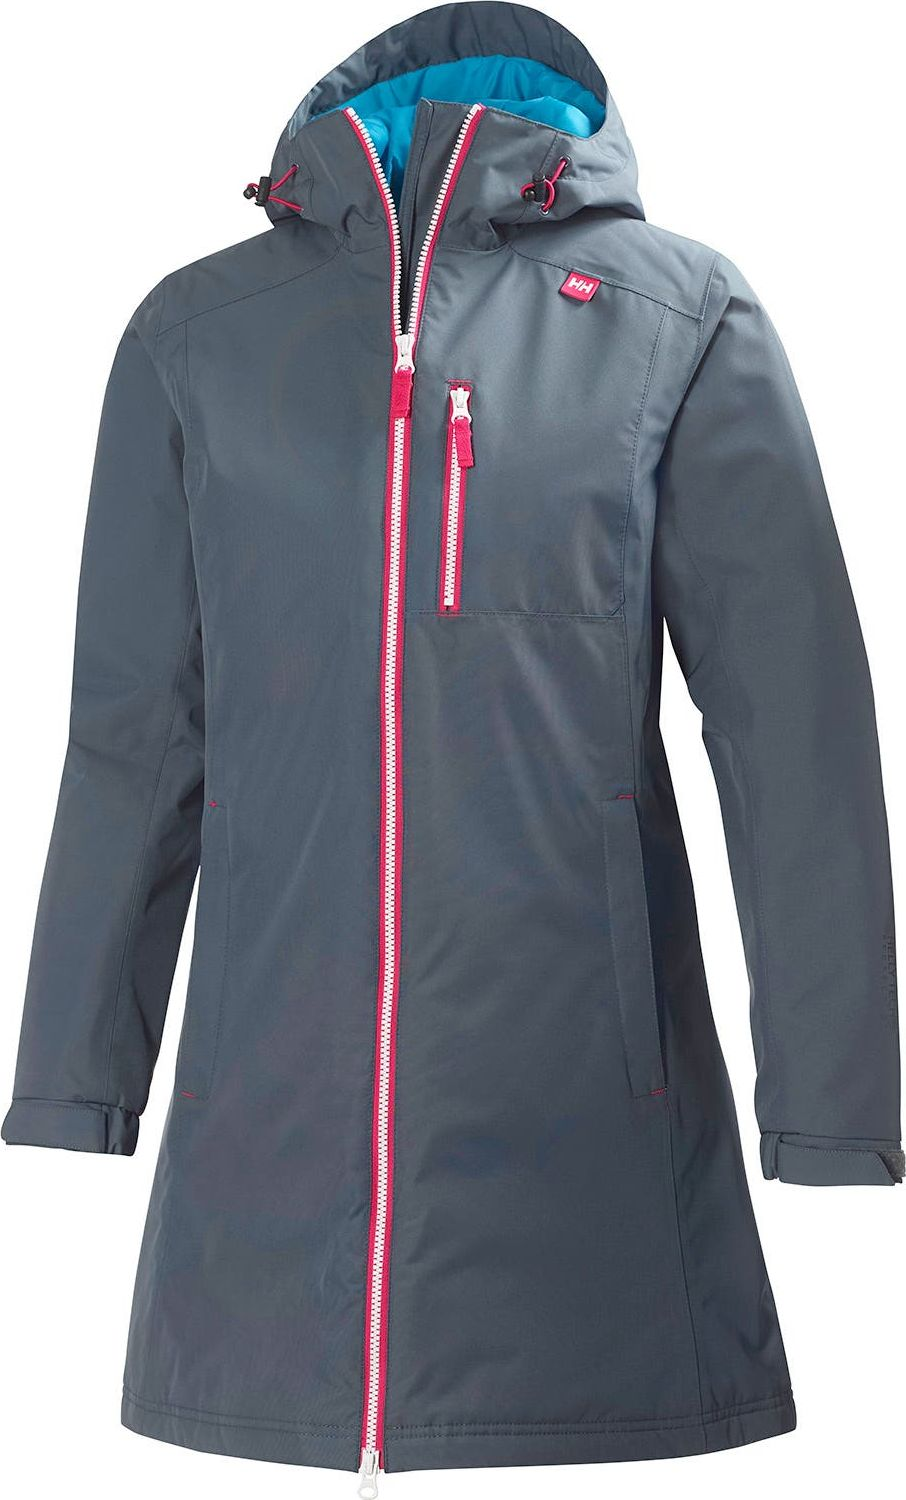 HELLY HANSEN Long Belfast Winter Jacket Women's Charcoal S